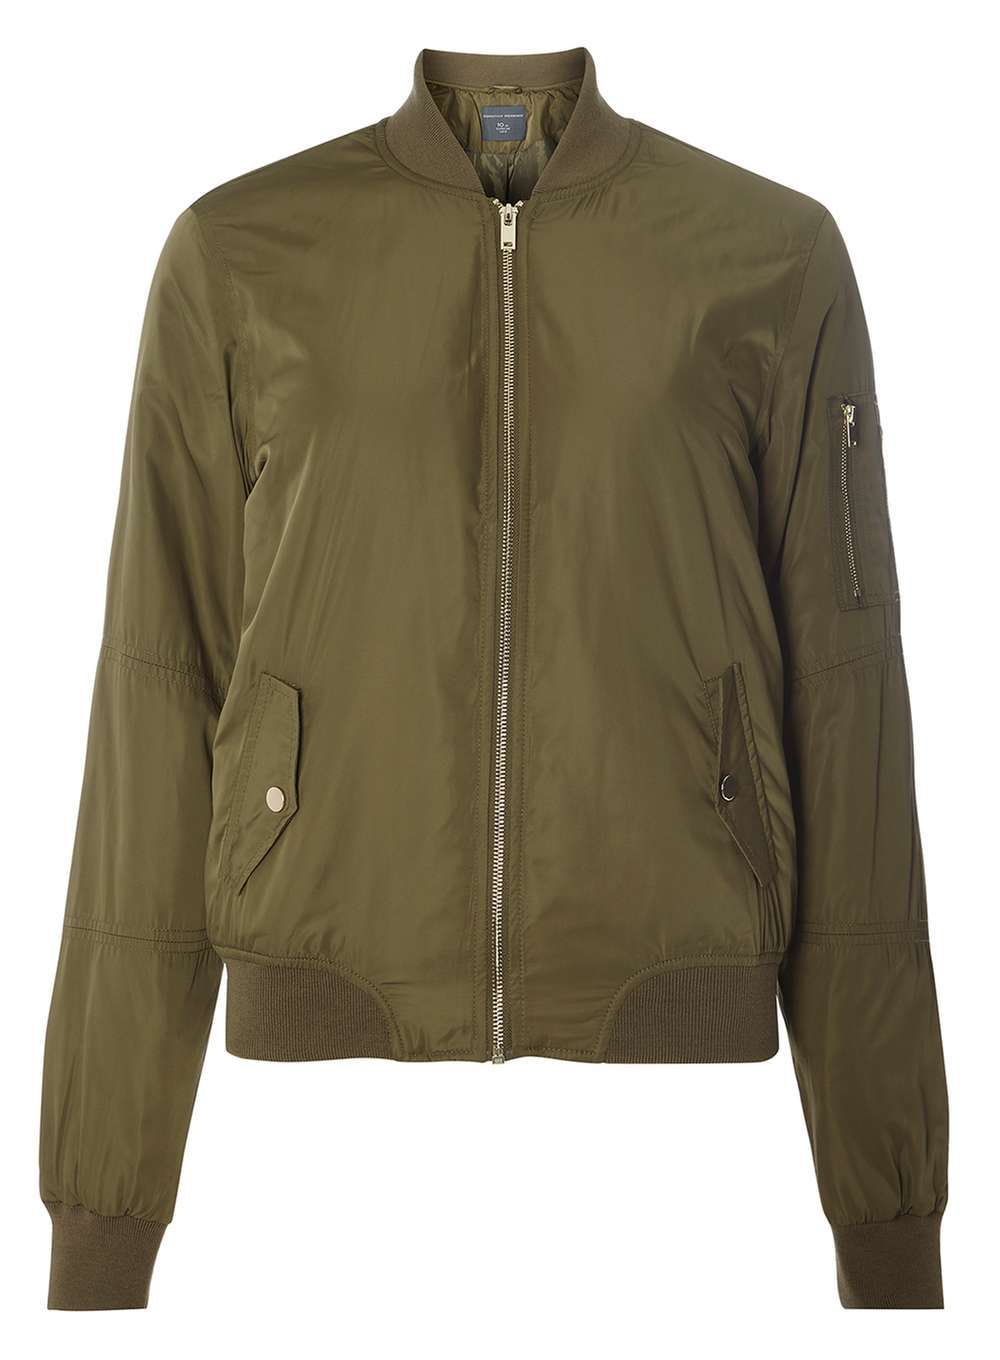 Womens **Tall Khaki Bomber Jacket Khaki - pattern: plain; collar: round collar/collarless; fit: slim fit; style: bomber; predominant colour: khaki; occasions: casual, creative work; length: standard; fibres: polyester/polyamide - 100%; sleeve length: long sleeve; sleeve style: standard; texture group: technical outdoor fabrics; collar break: high; pattern type: fabric; wardrobe: basic; season: a/w 2016